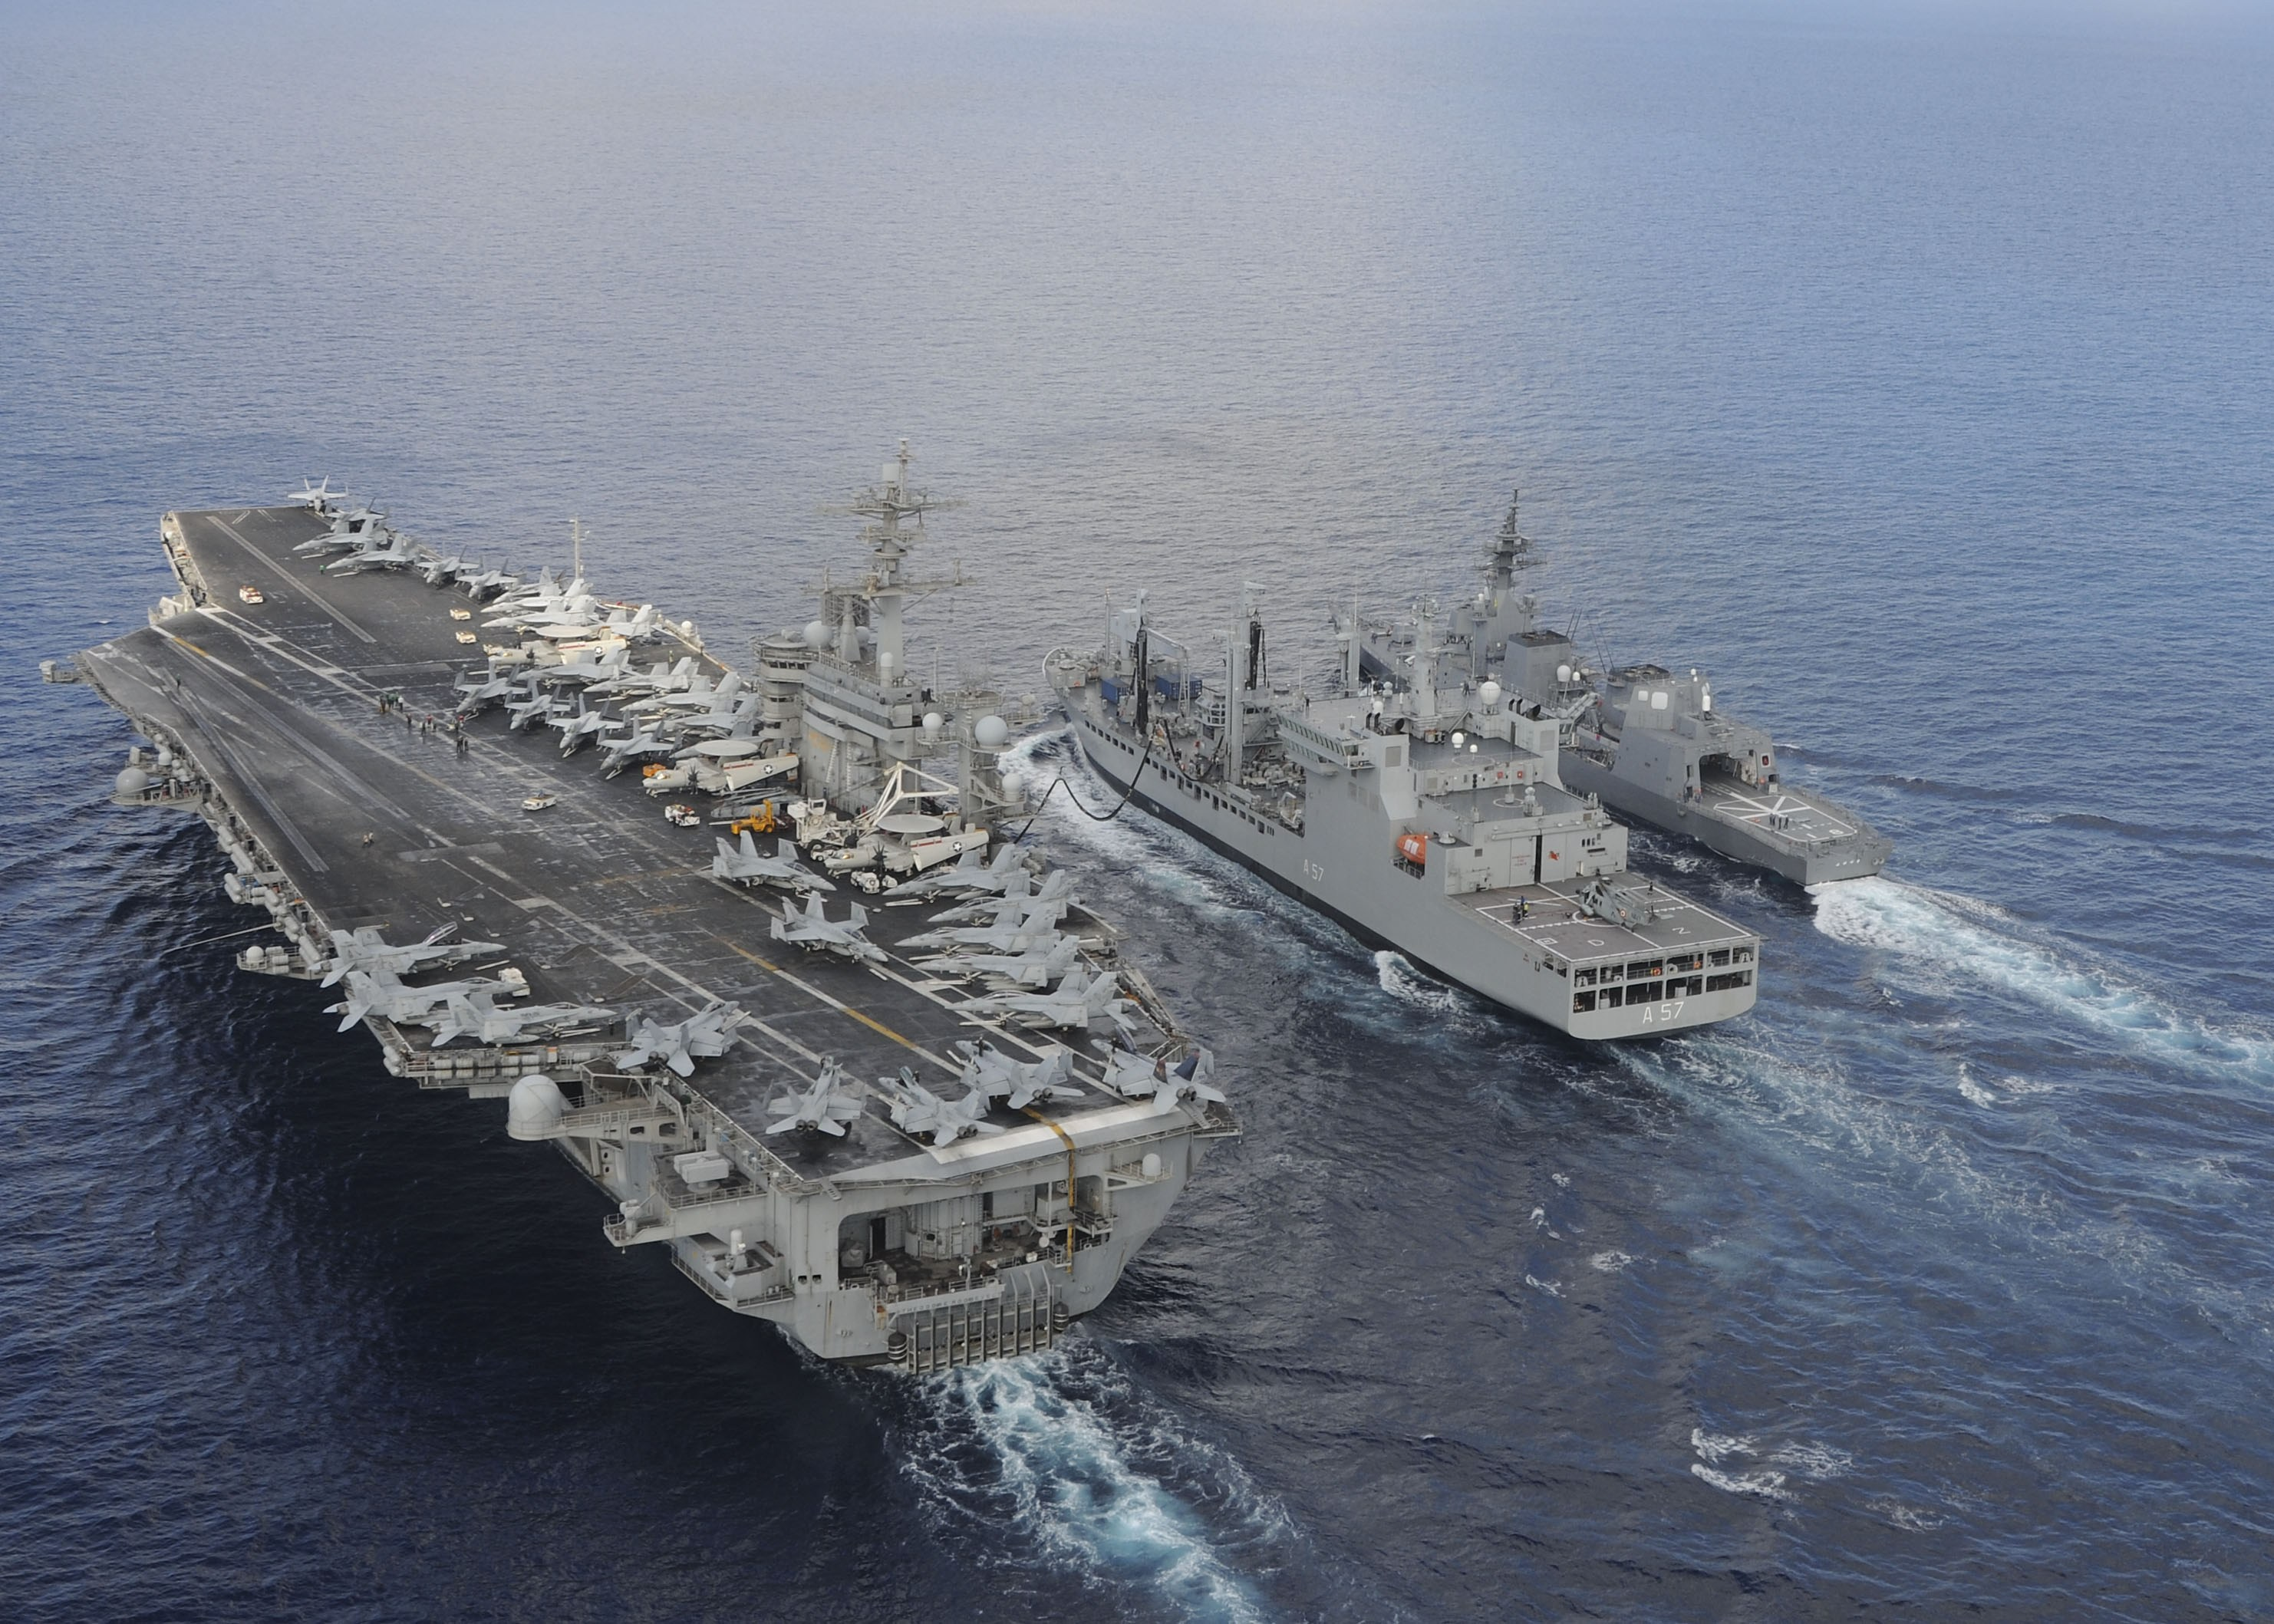 INS Shakti -Indian Navy tanker refueling USS Theodore Roosevelt and Japanese Navy destroyer. Source - Net.